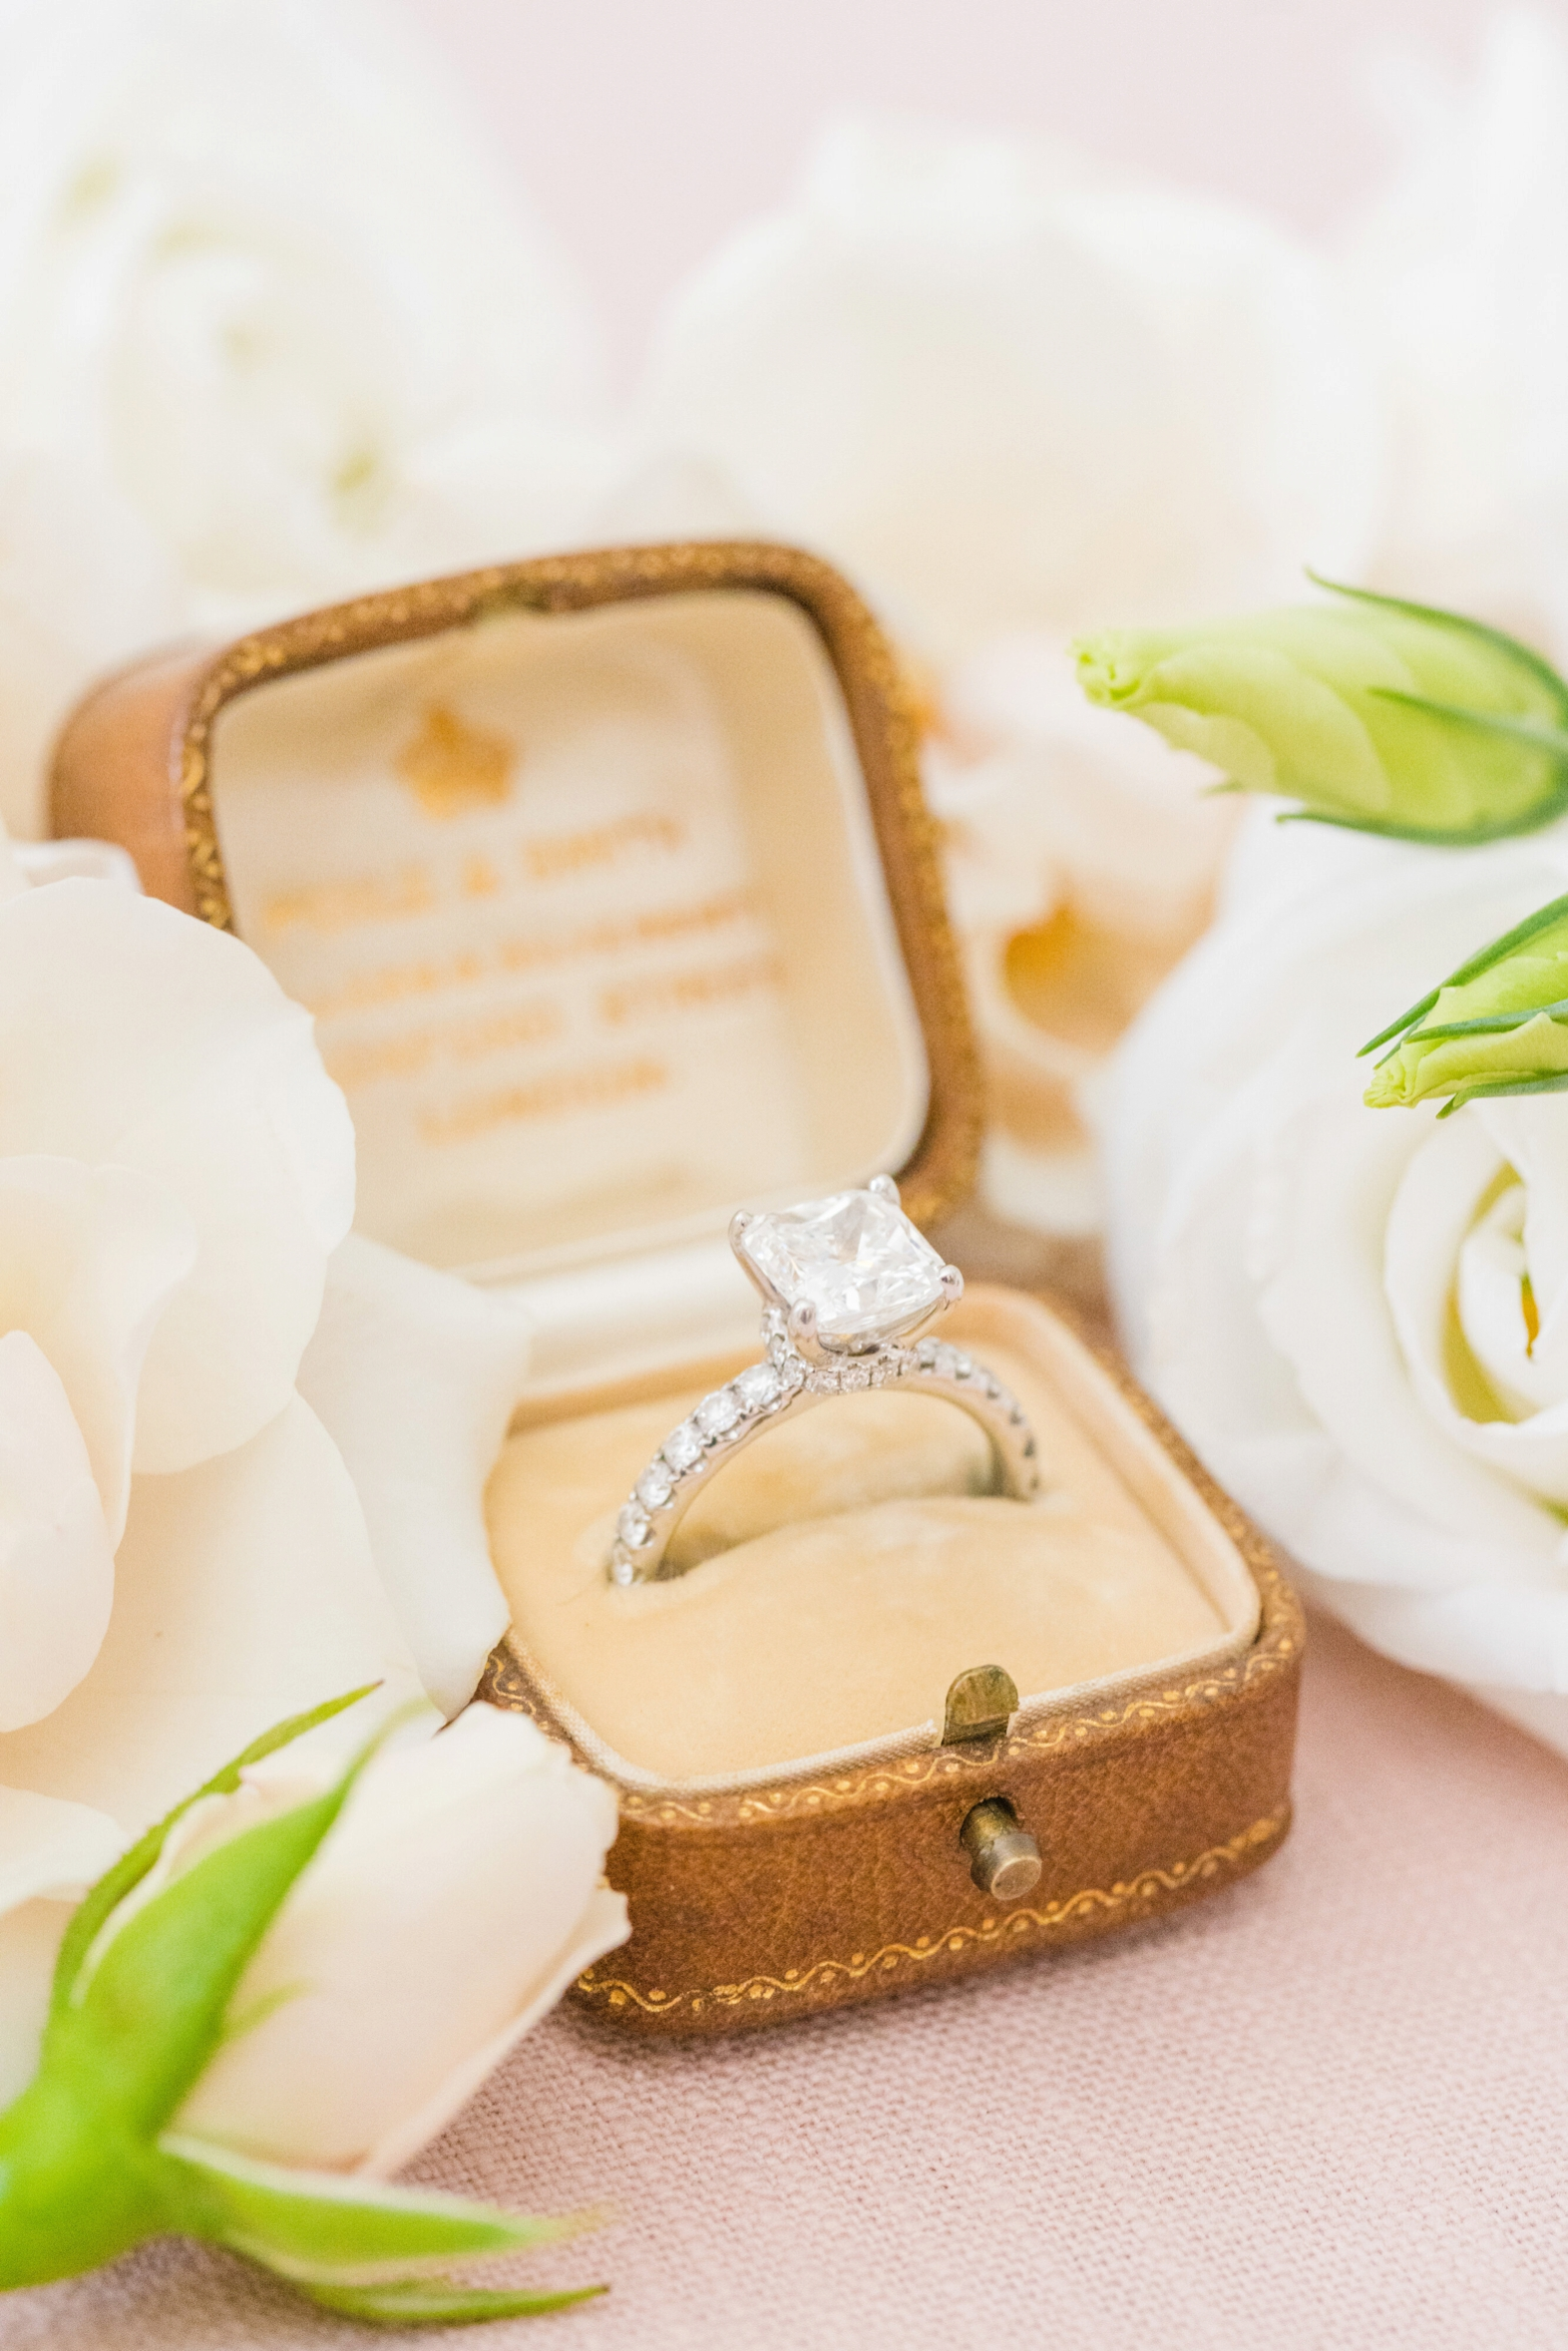 Diamond ring in case  styled shoot with roses - photo by Dana Cubbage Weddings